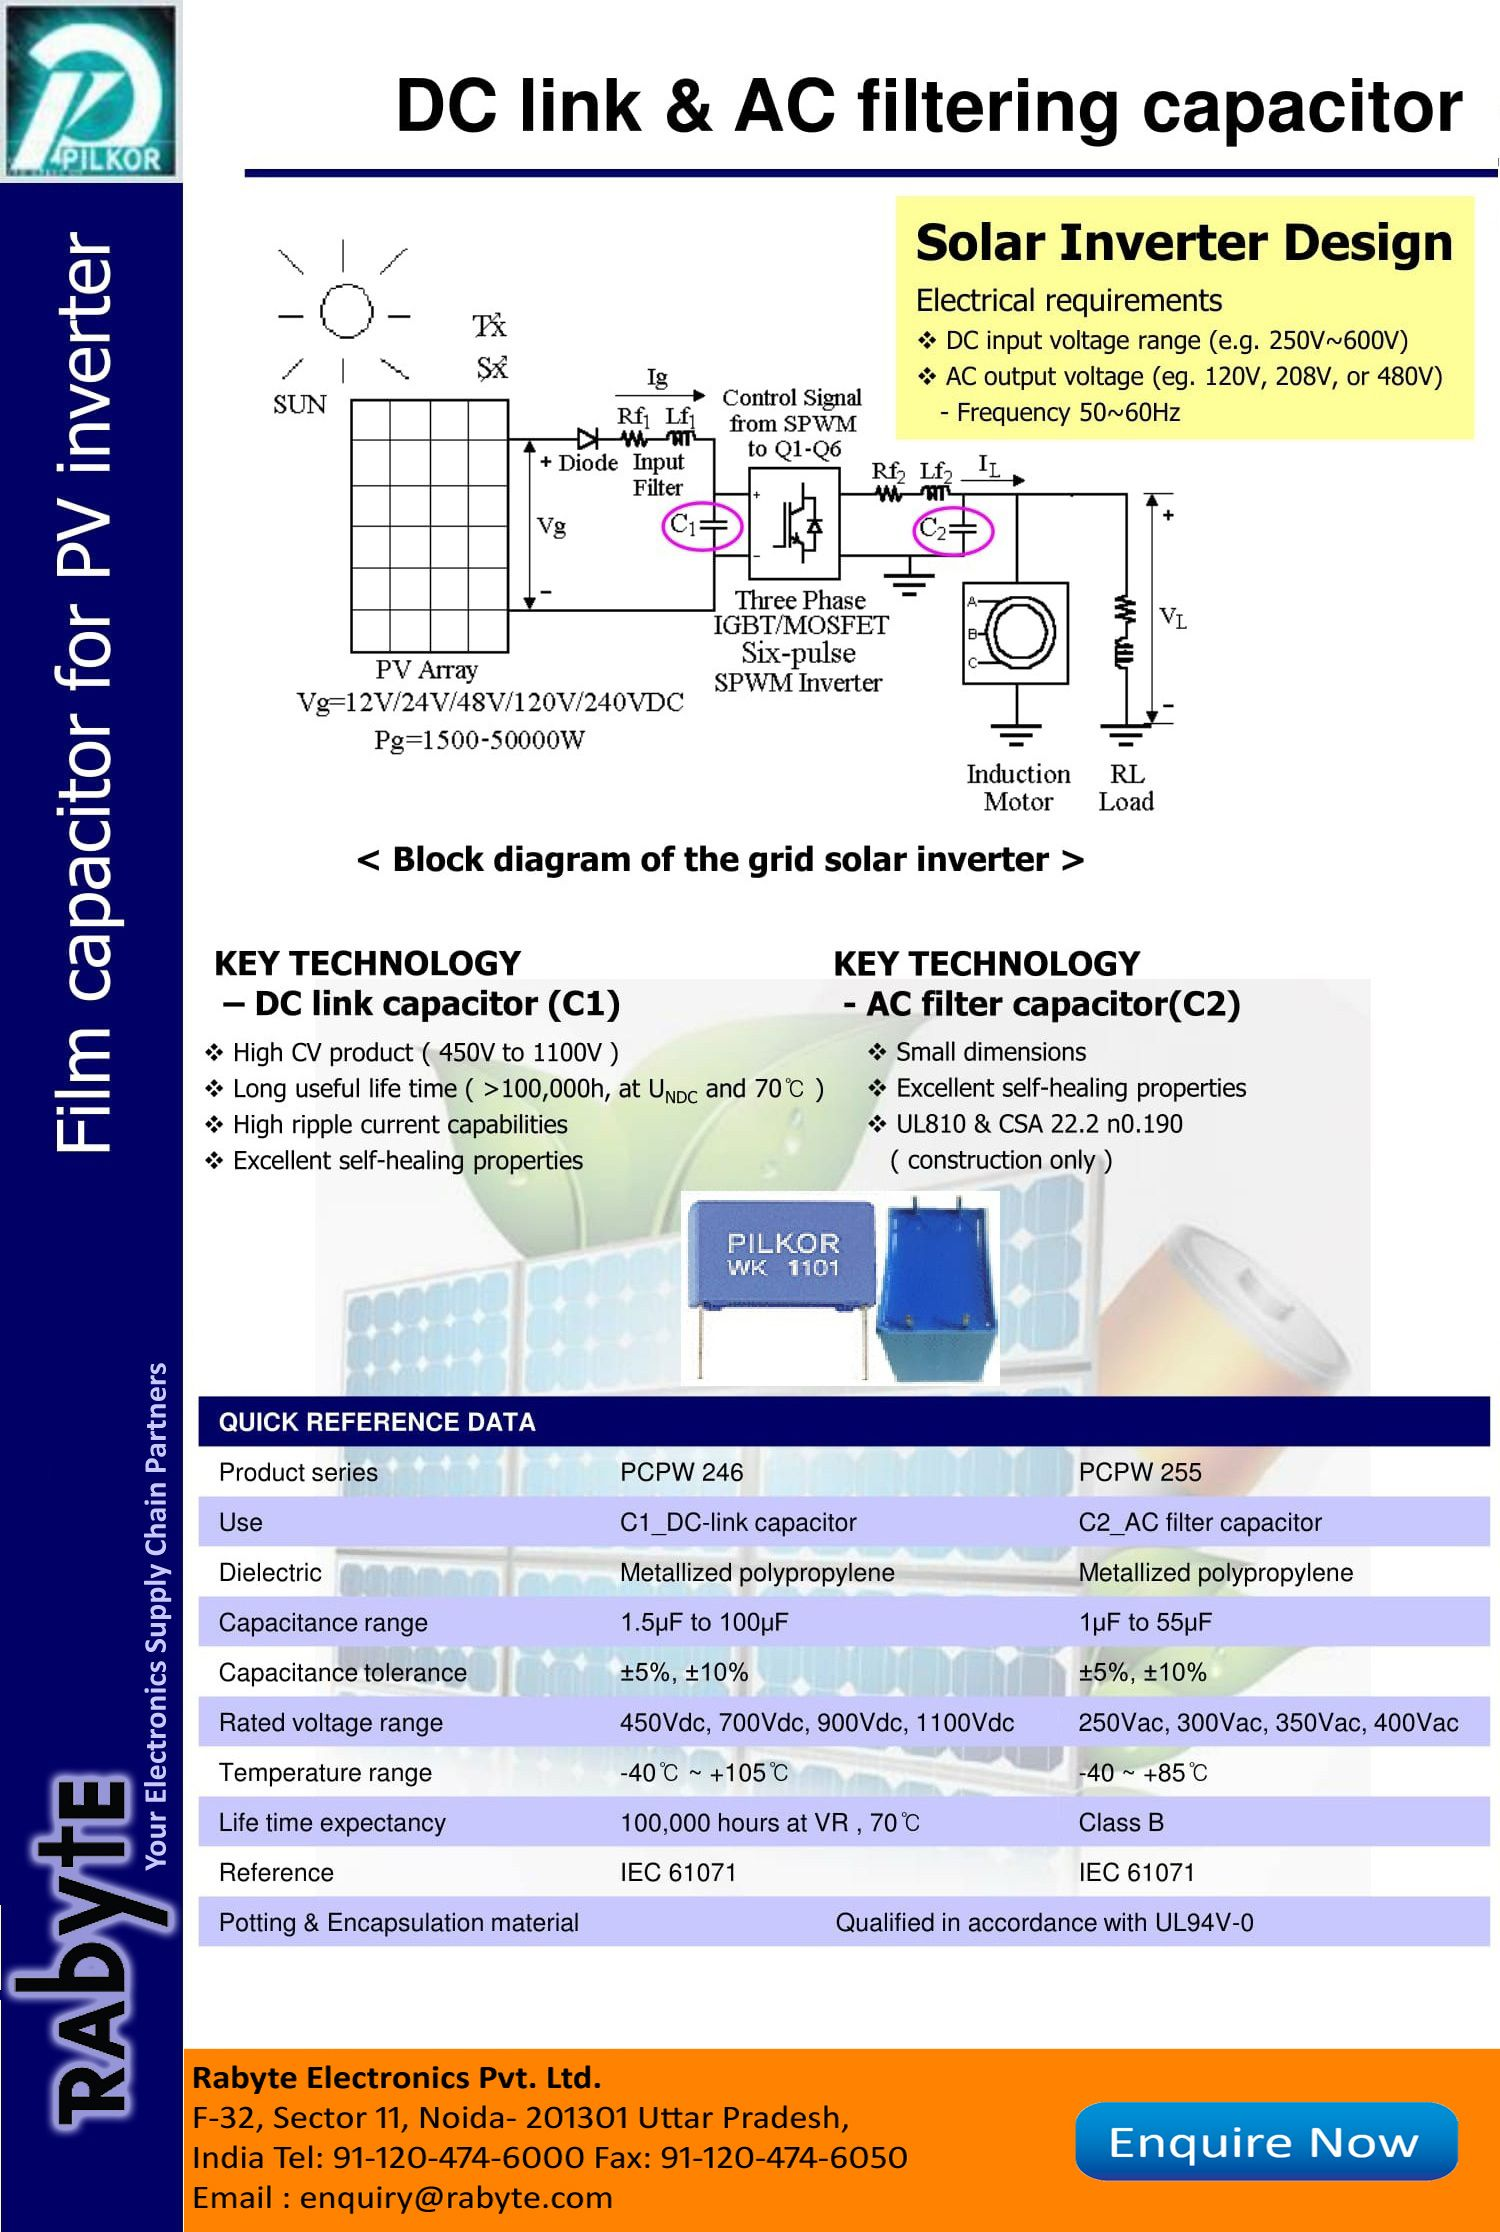 DC Link & AC Filtering Capacitors For Solar Inverters !